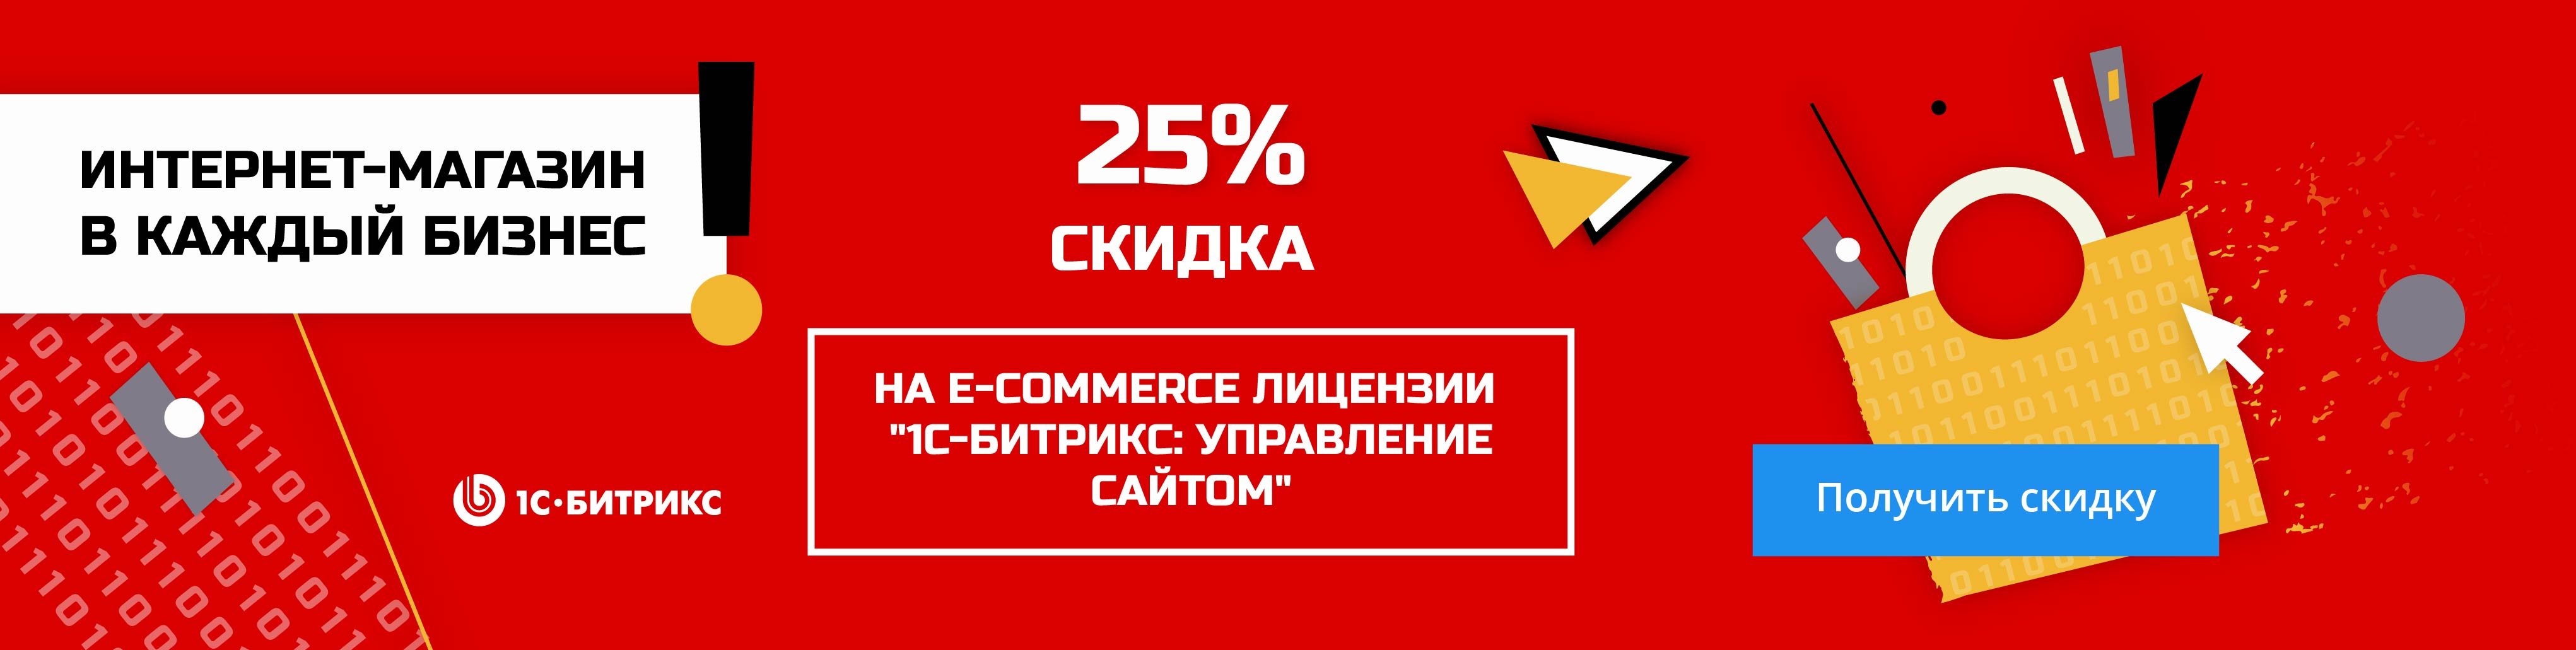 Скидка до 25% на e-commerce продукты 1С-Битрикс!